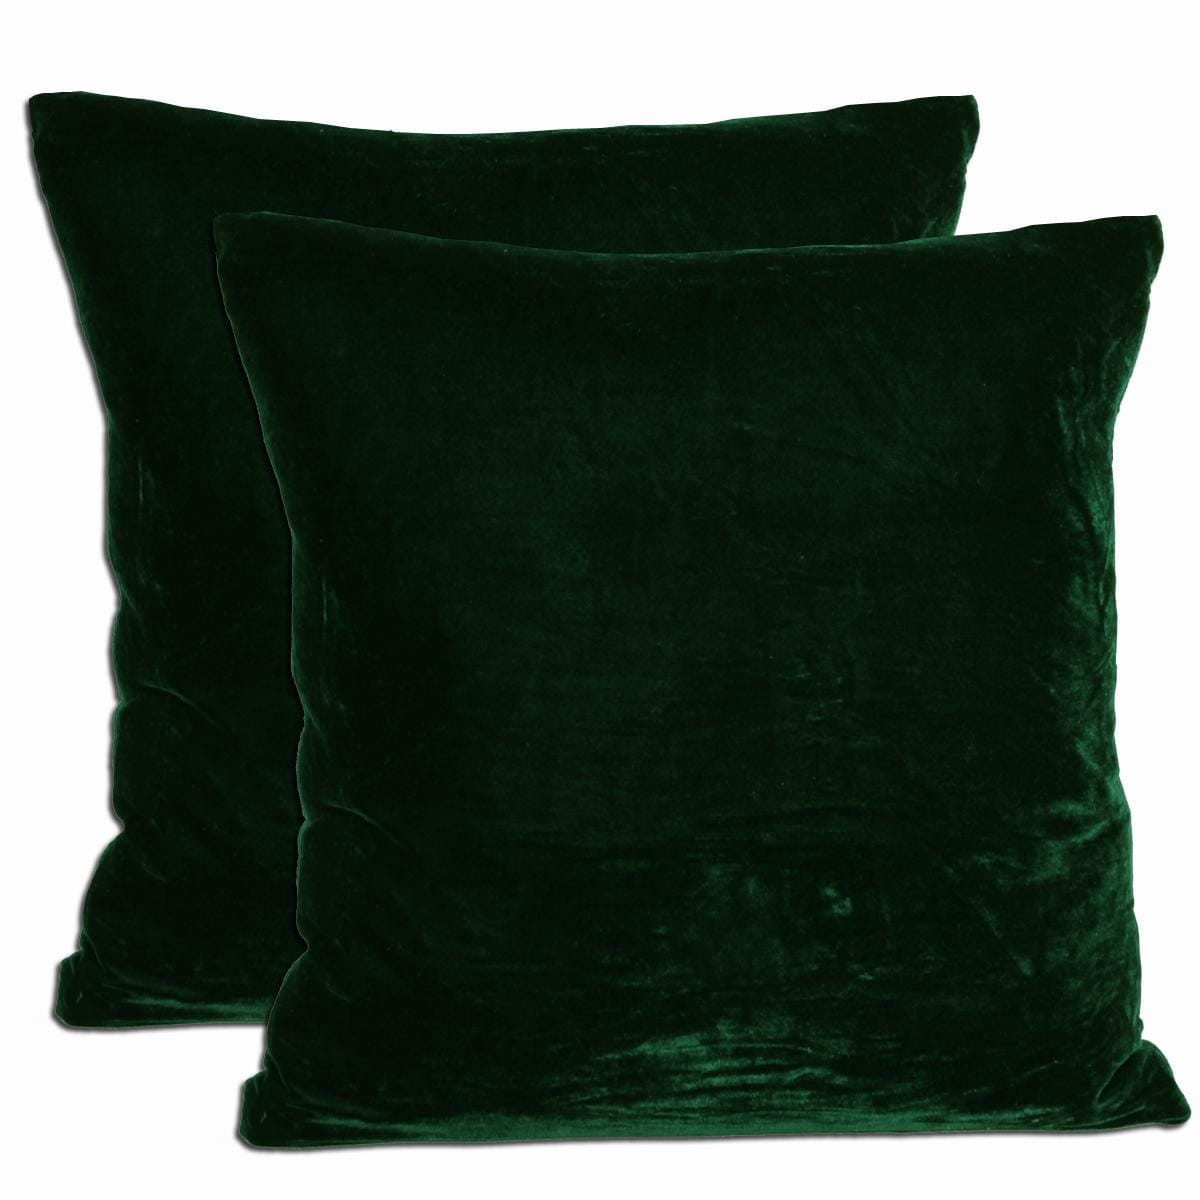 Kelly green velvet curtains - Green Velvet Feather And Down Filled Throw Pillows Set Of 2